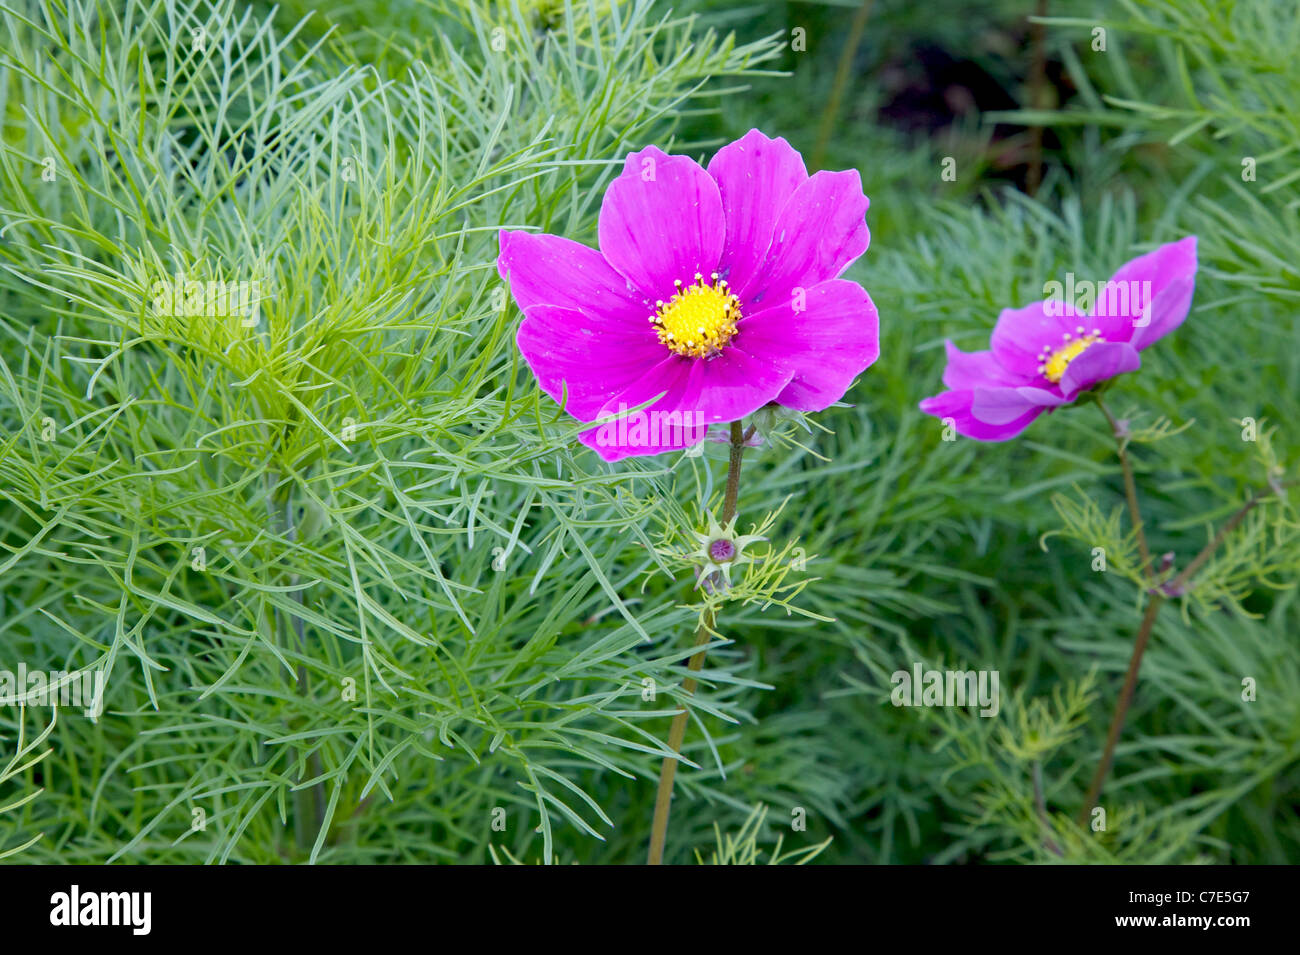 Bright cerise flowers of the Mexican Aster or garden Cosmos C. pinnatus and its feathery foliage - Stock Image